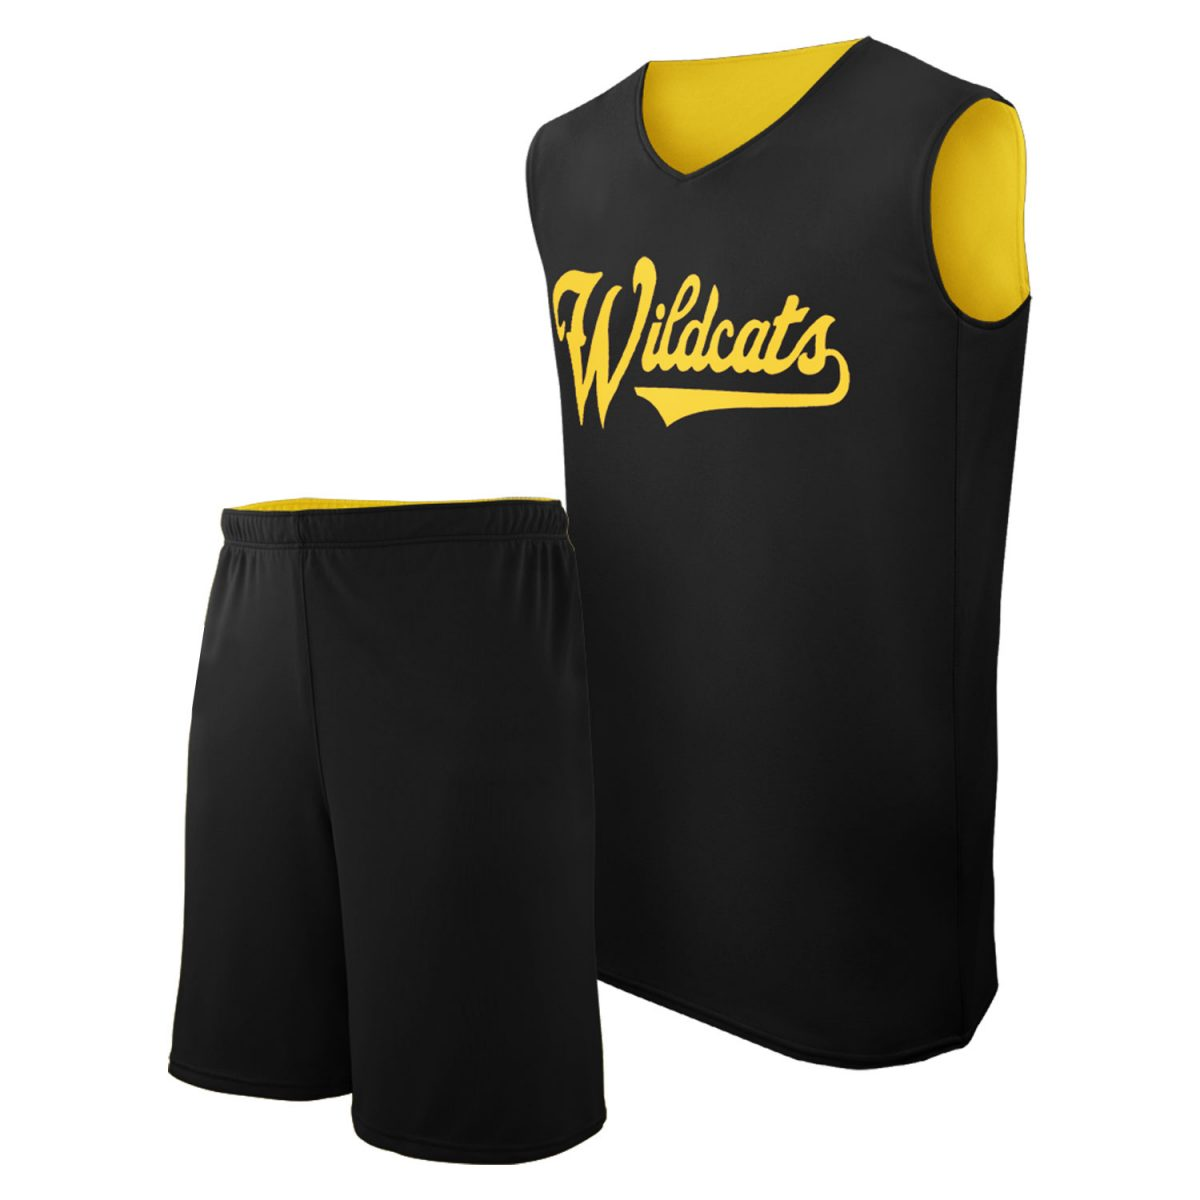 Boys Basketball Uniforms Manufacturers in Mumbai